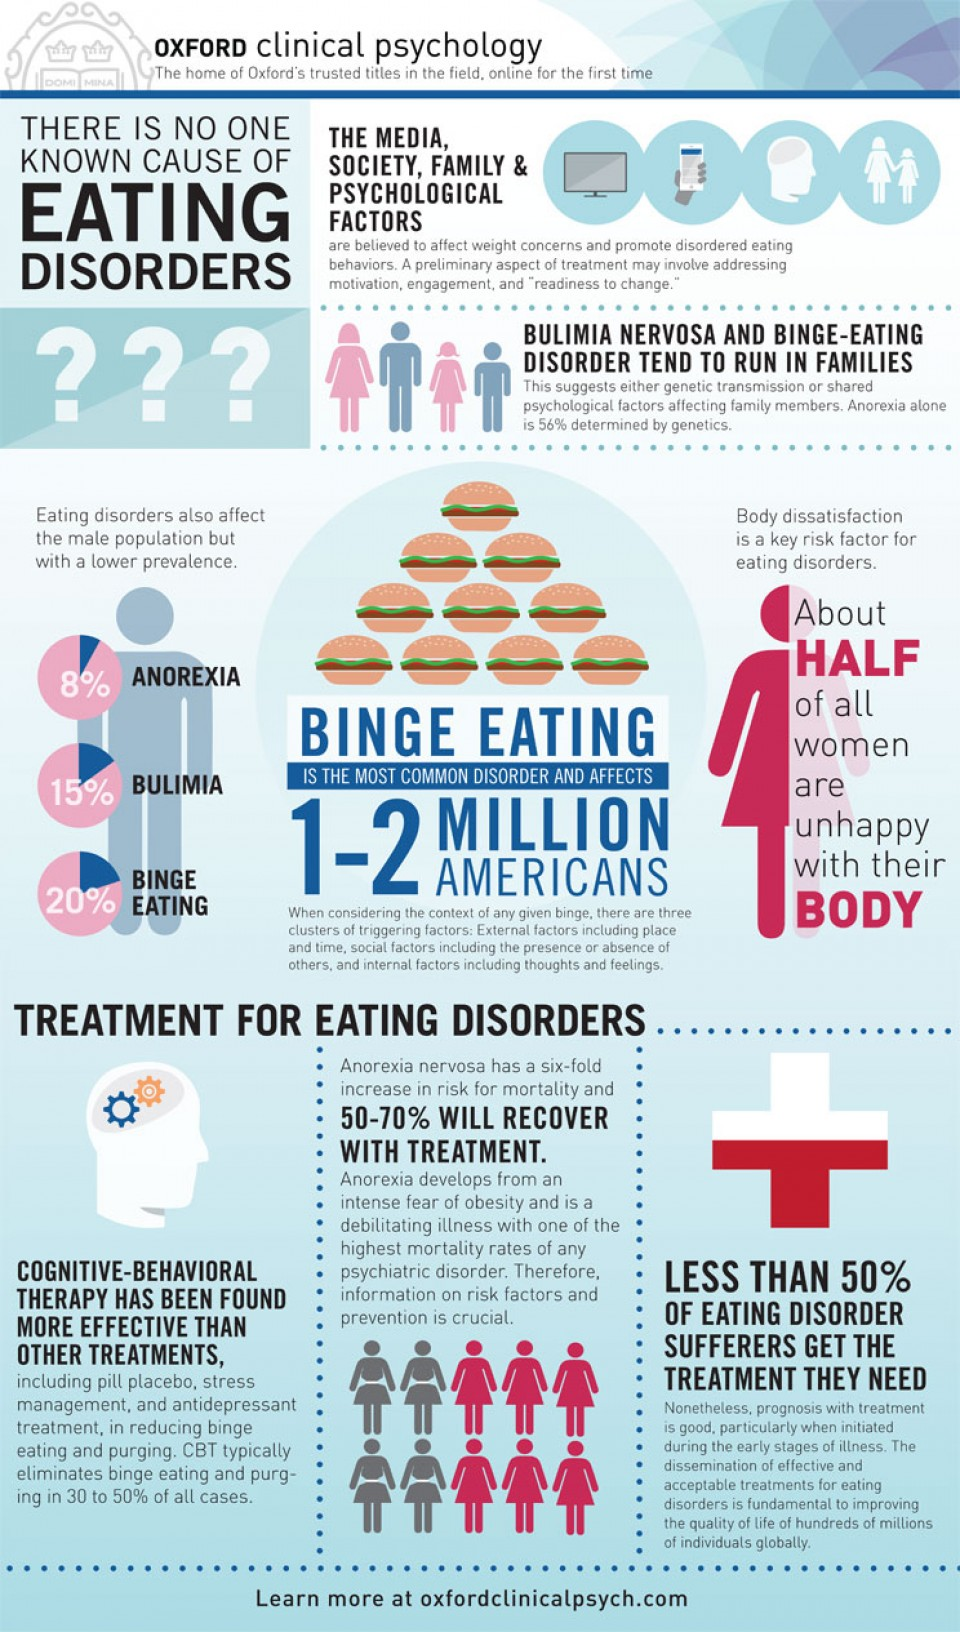 002 Research Paper Oup Ocp Infographic 03 Psychological On Eating Imposing Disorders Psychology Topics 960